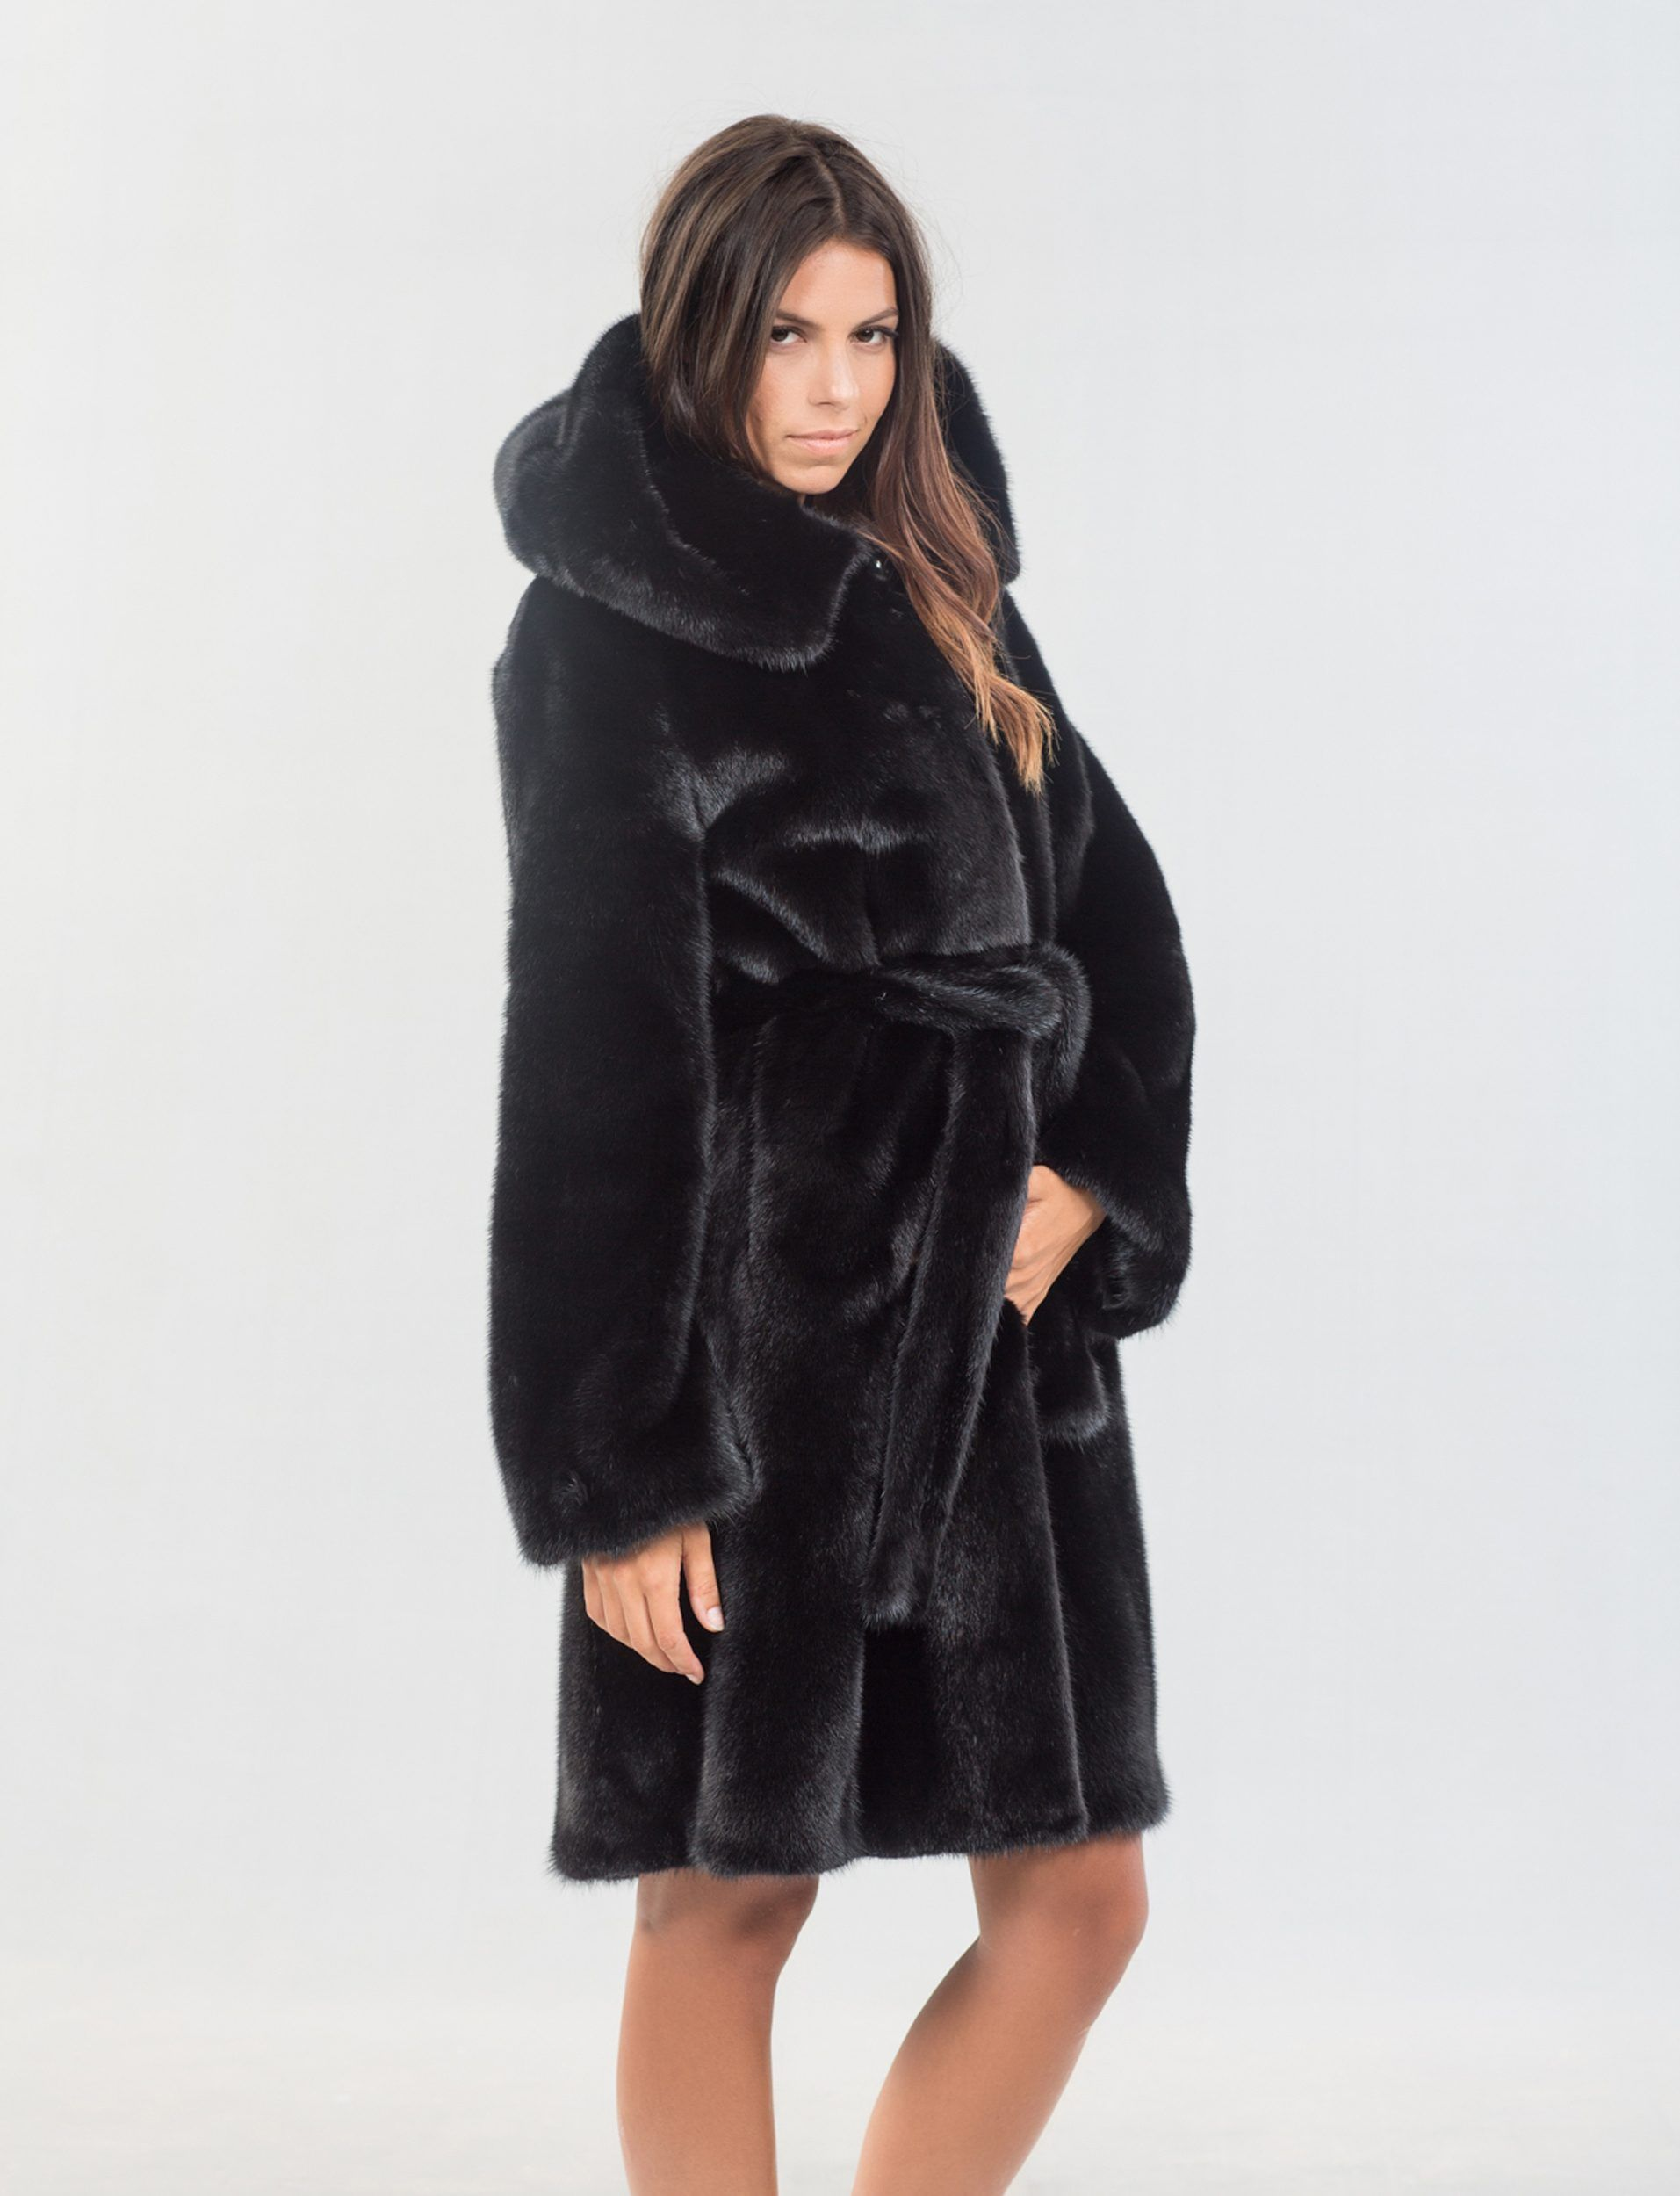 54ca4a45b23 Black Mink Fur Jacket With Hood. 100% Real Fur Coats and Accessories.